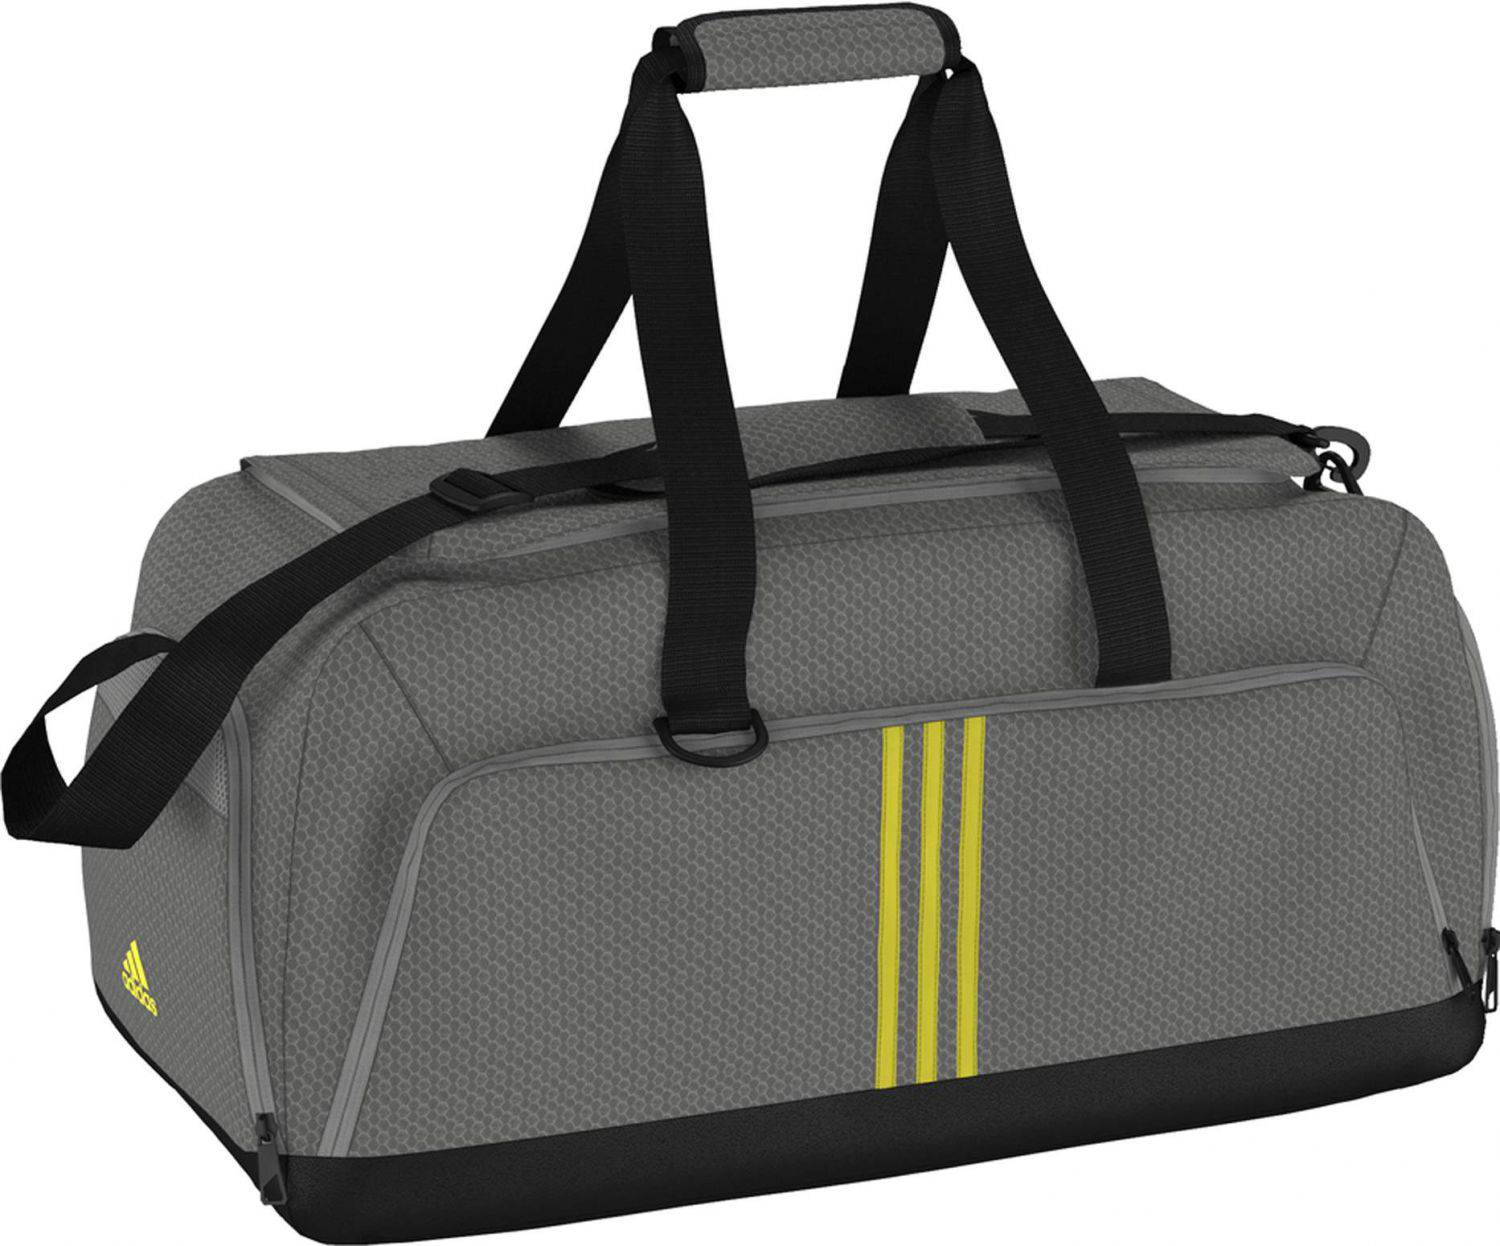 adidas-performance-3s-teambag-m-sporttasche-farbe-mgh-solid-grey-bright-yellow-bright-yellow-